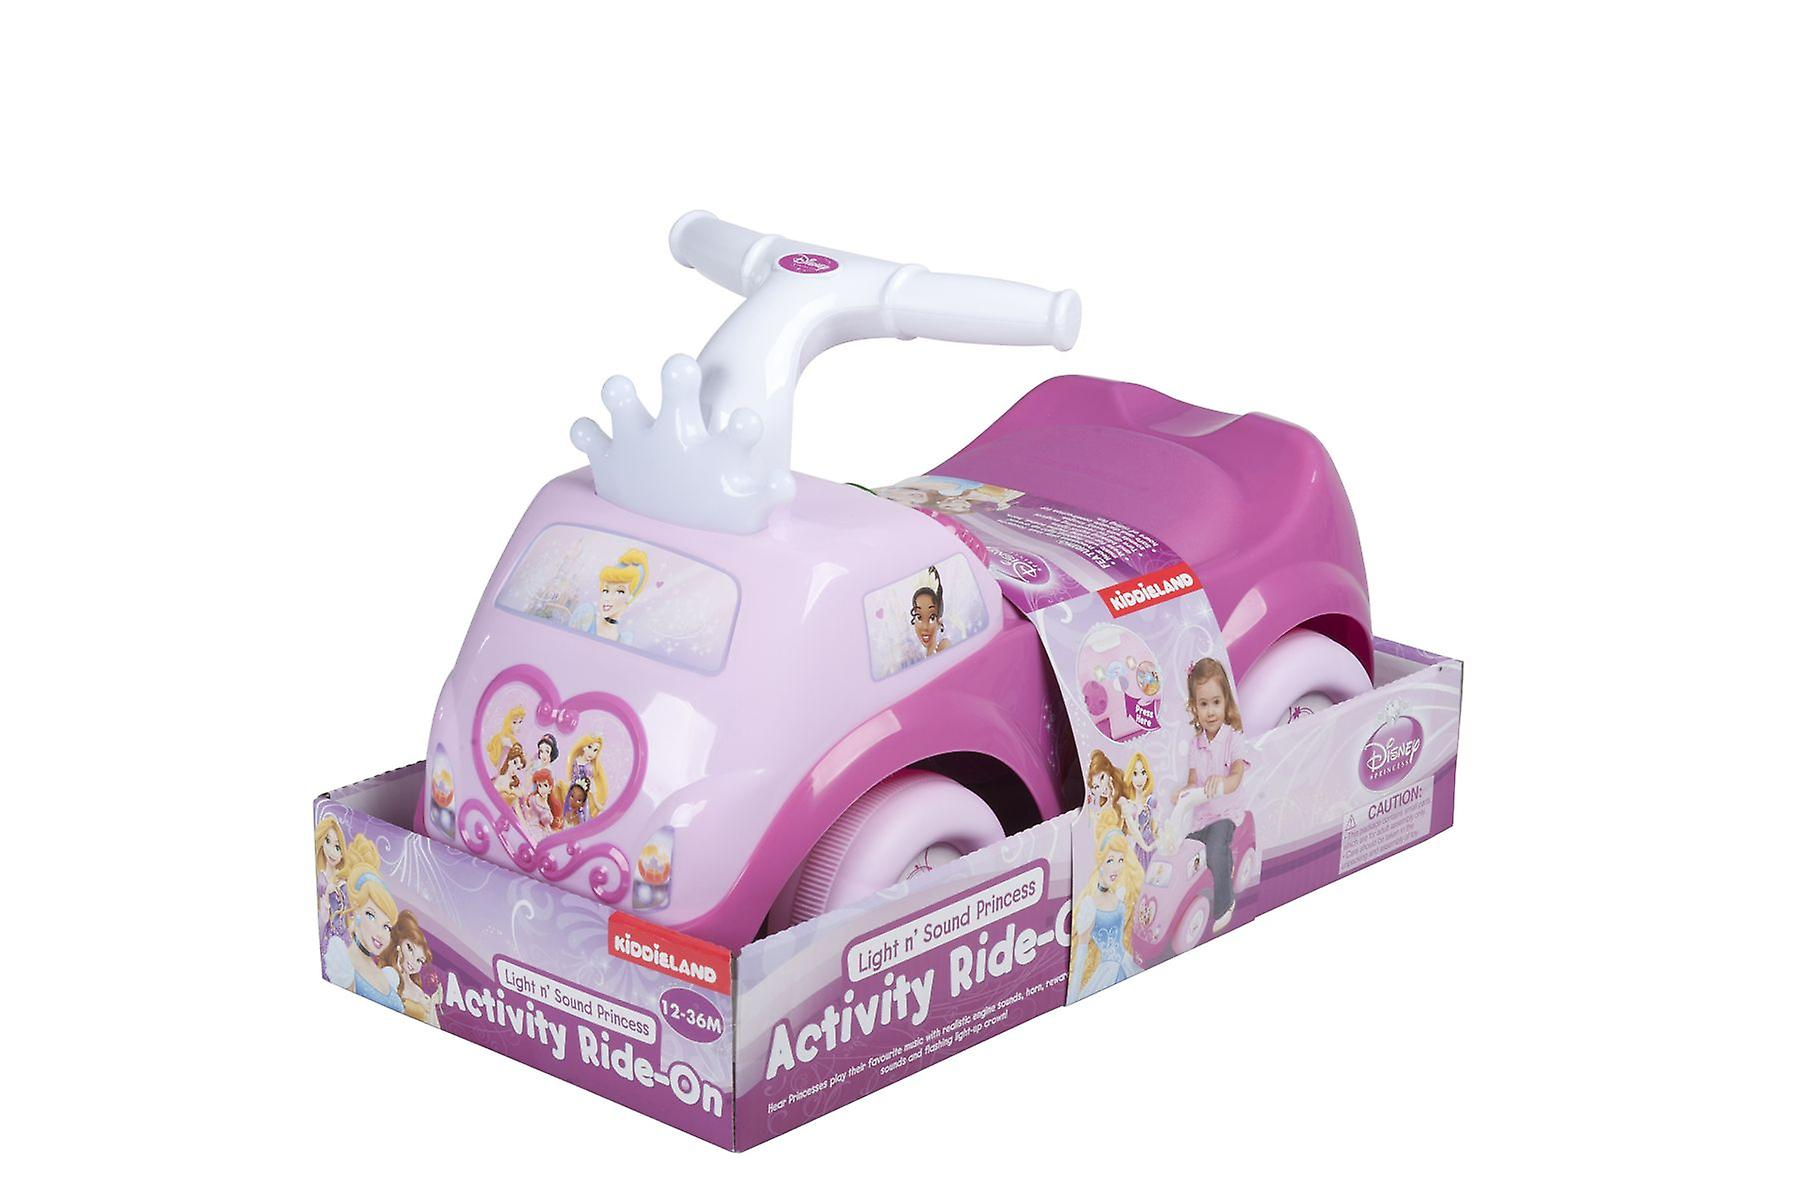 Pink Ride-on Princess Light & Sound Kids Activity made from Plastic